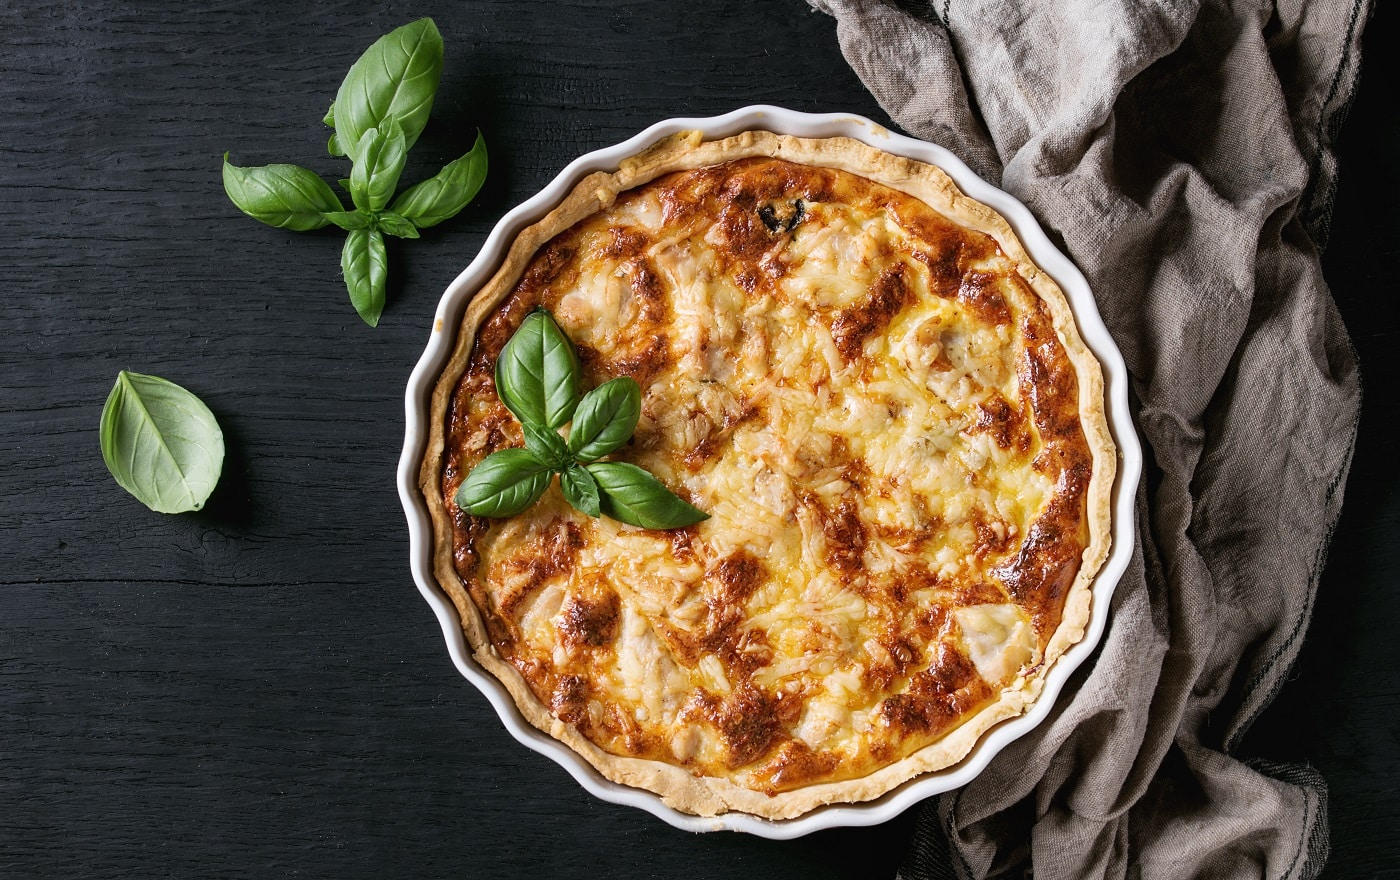 Baked homemade quiche pie in white ceramic form served with fresh greens and textile towel on black wooden burned background. Flat lay with copy space